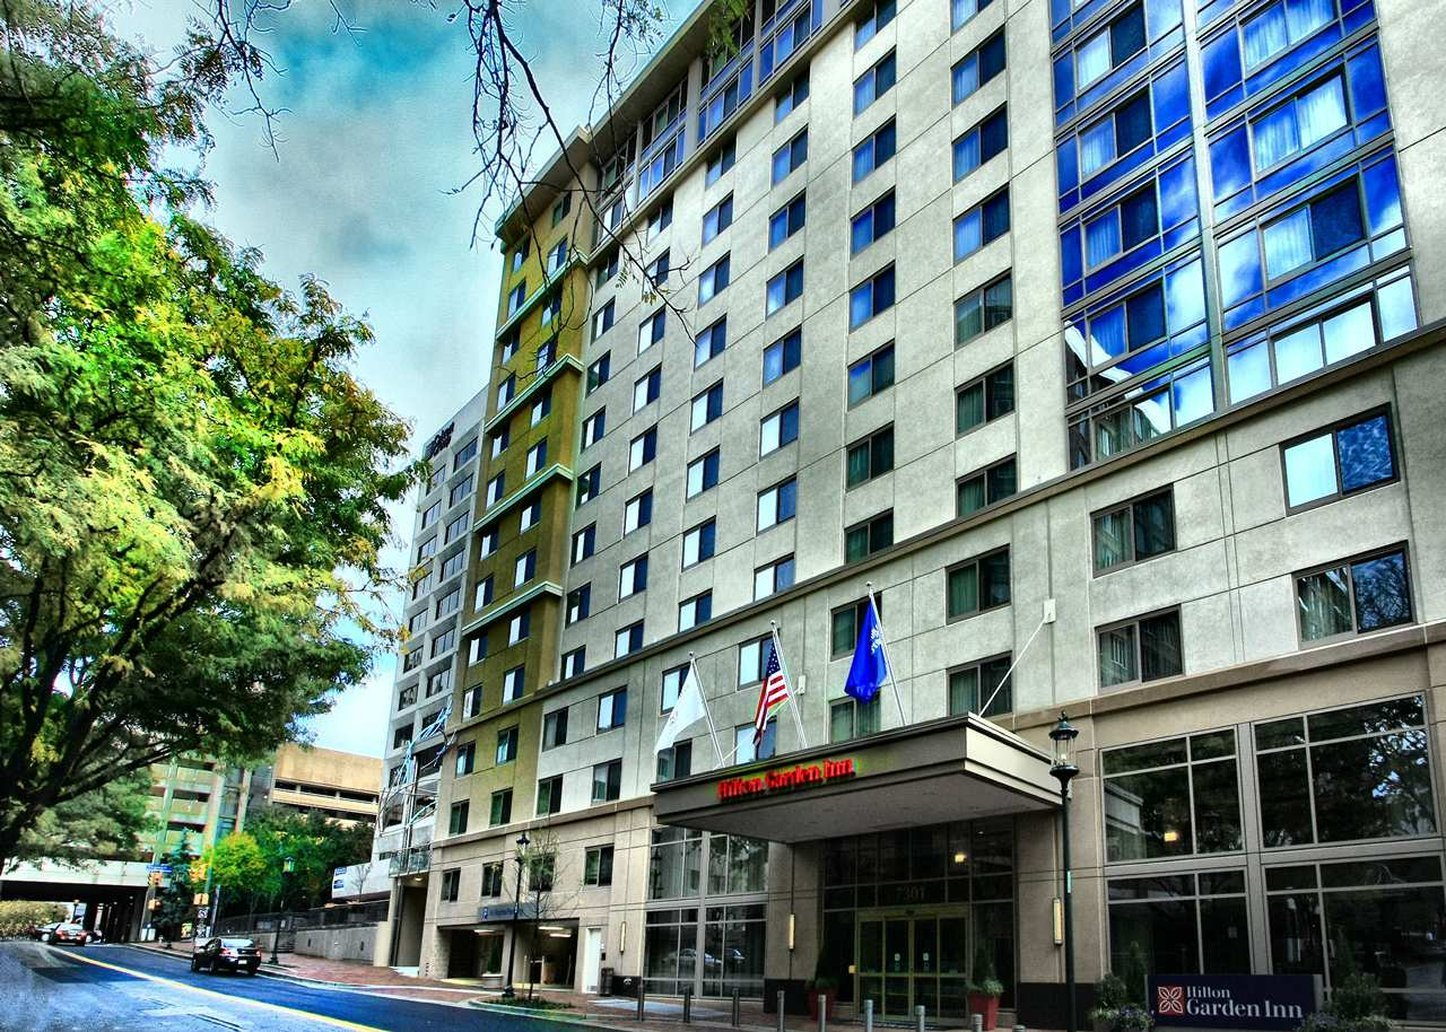 Hilton Garden Inn Washington Dc Bethesda Md Updated